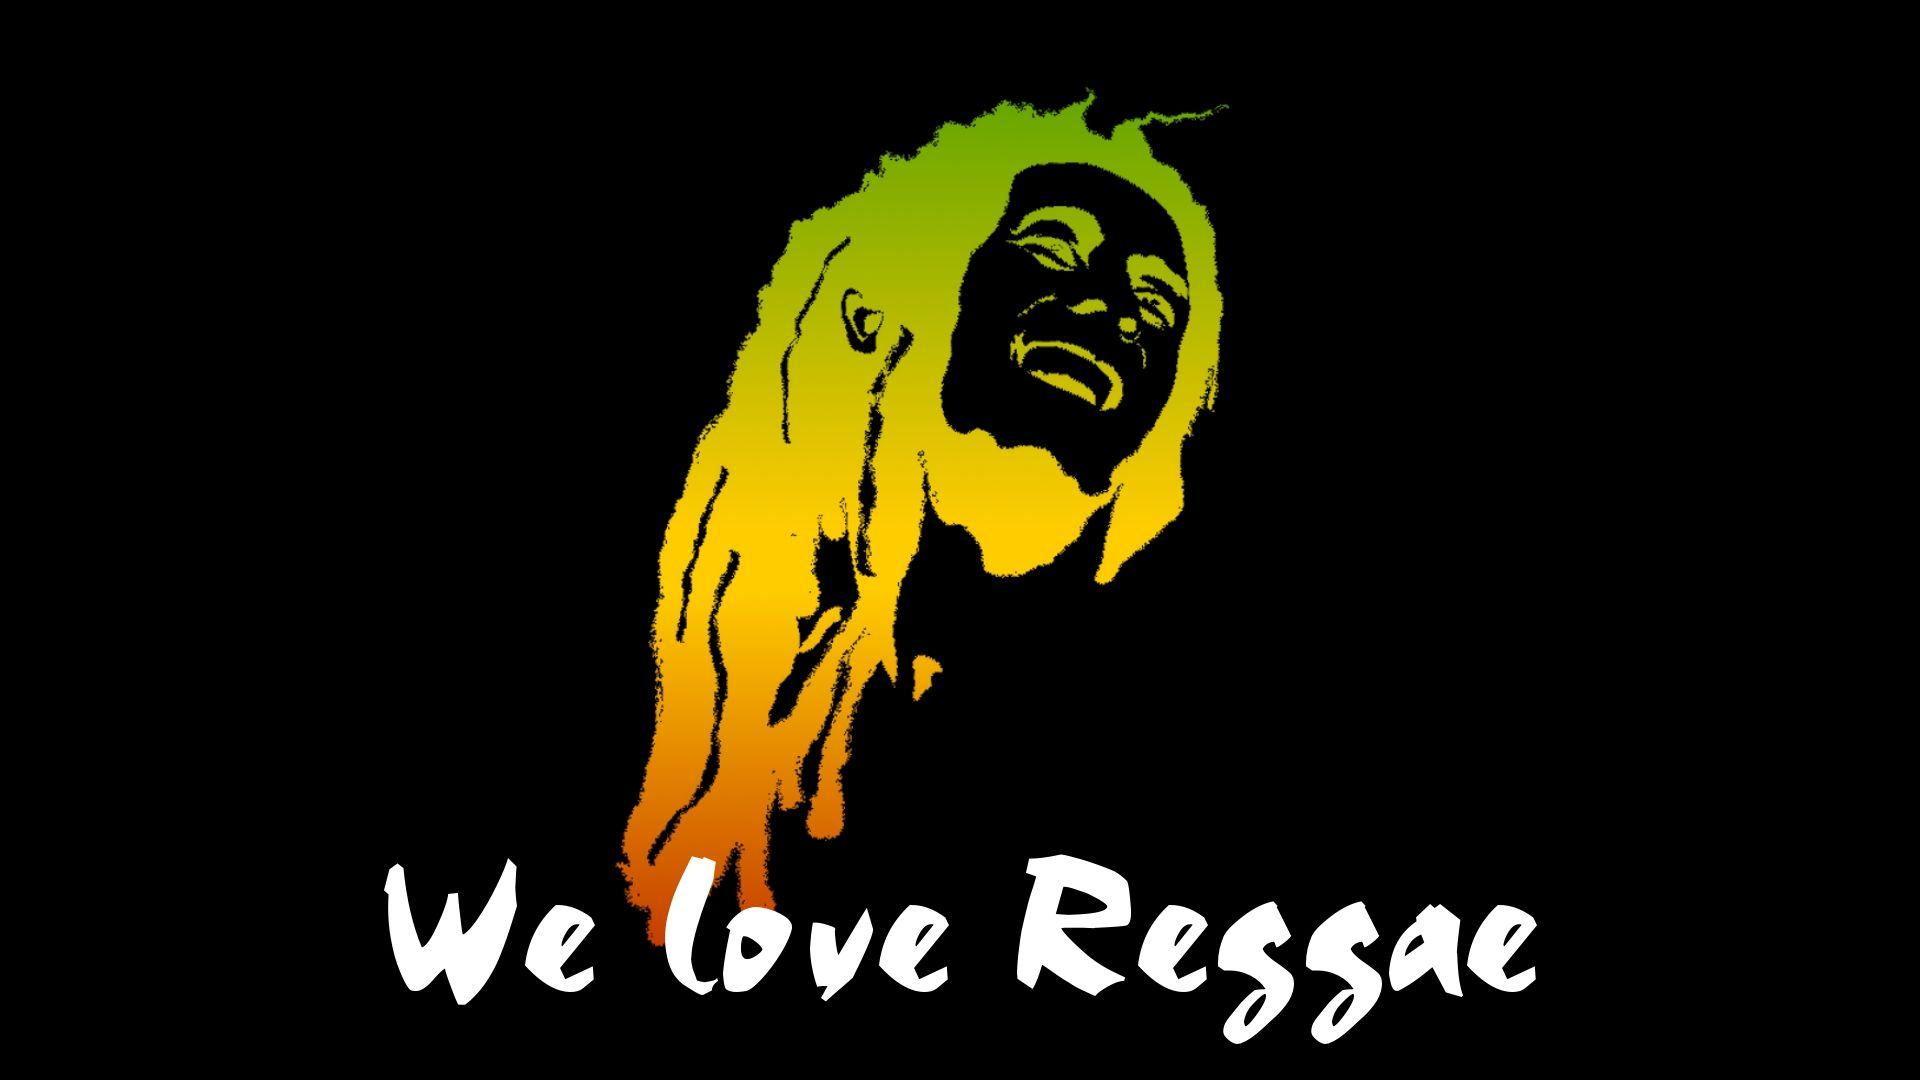 We love Reggae Wallpapers by Xilent2010